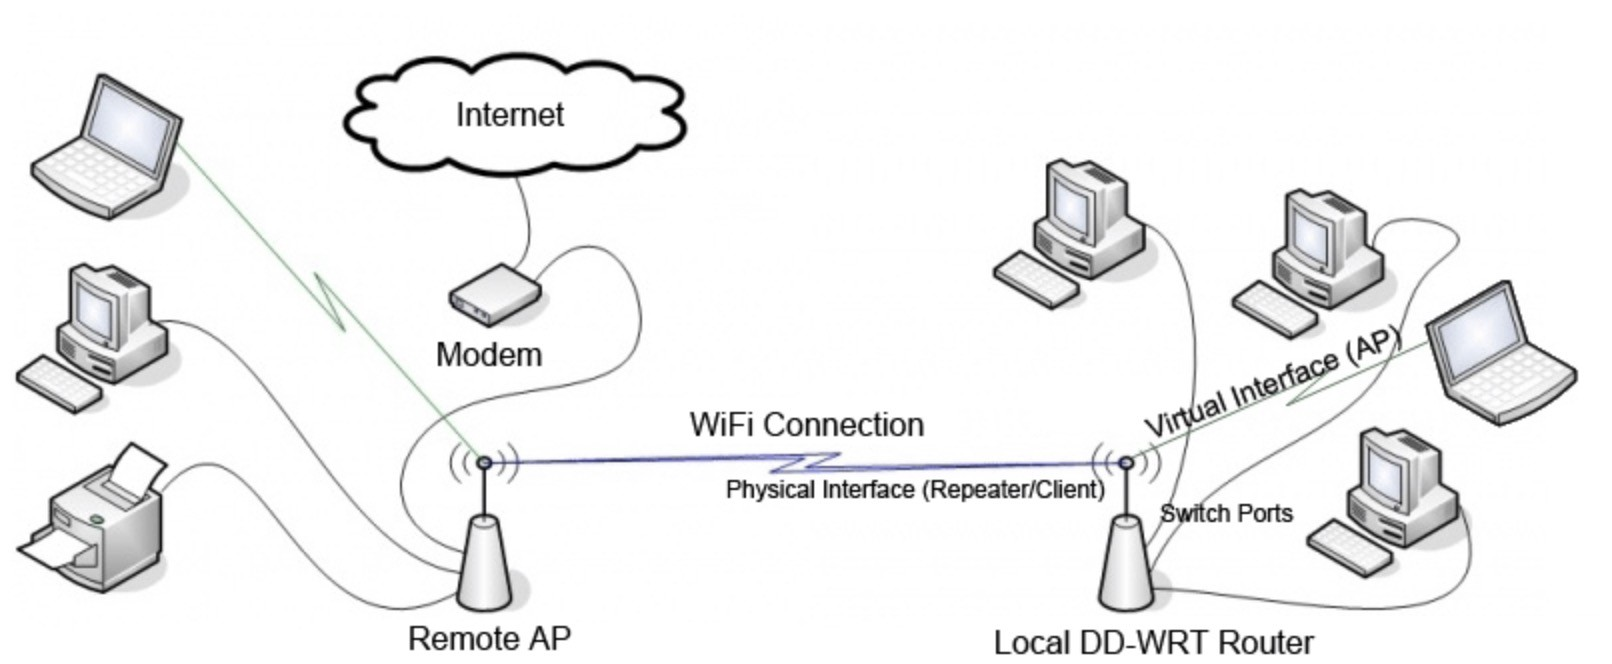 How to configure DD-WRT repeater mode for Atheros based routers